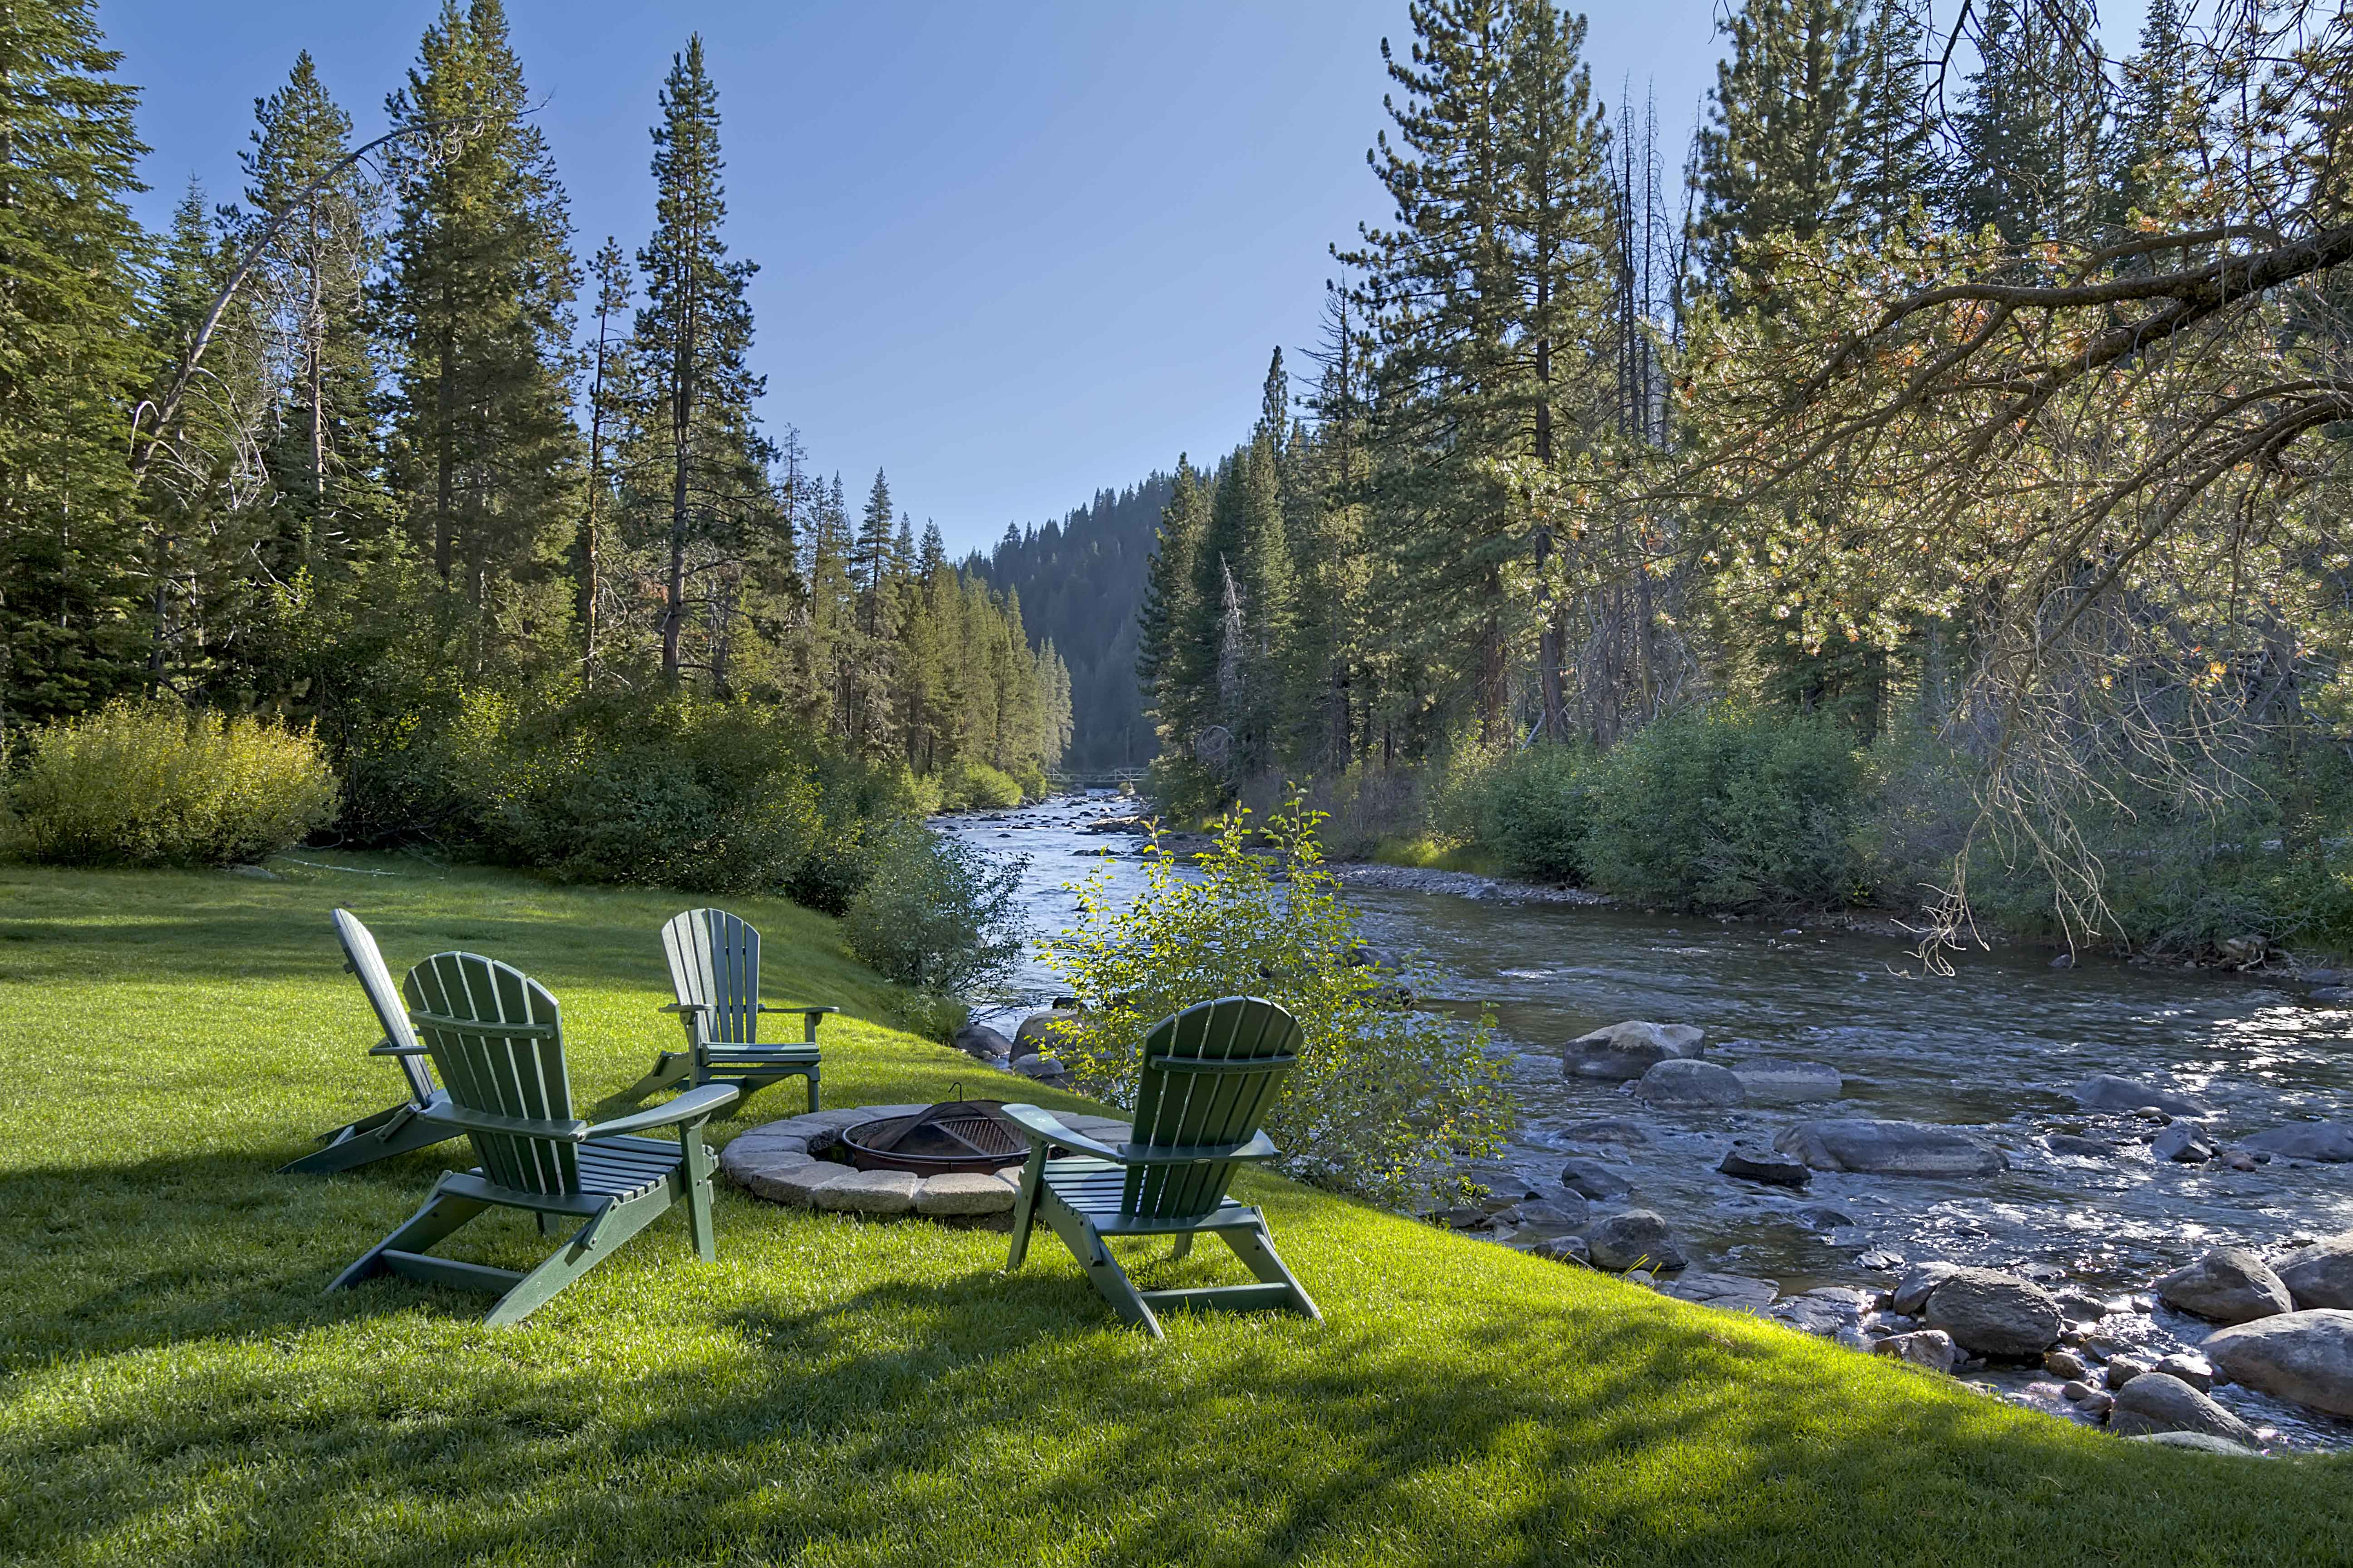 River lawn chairs